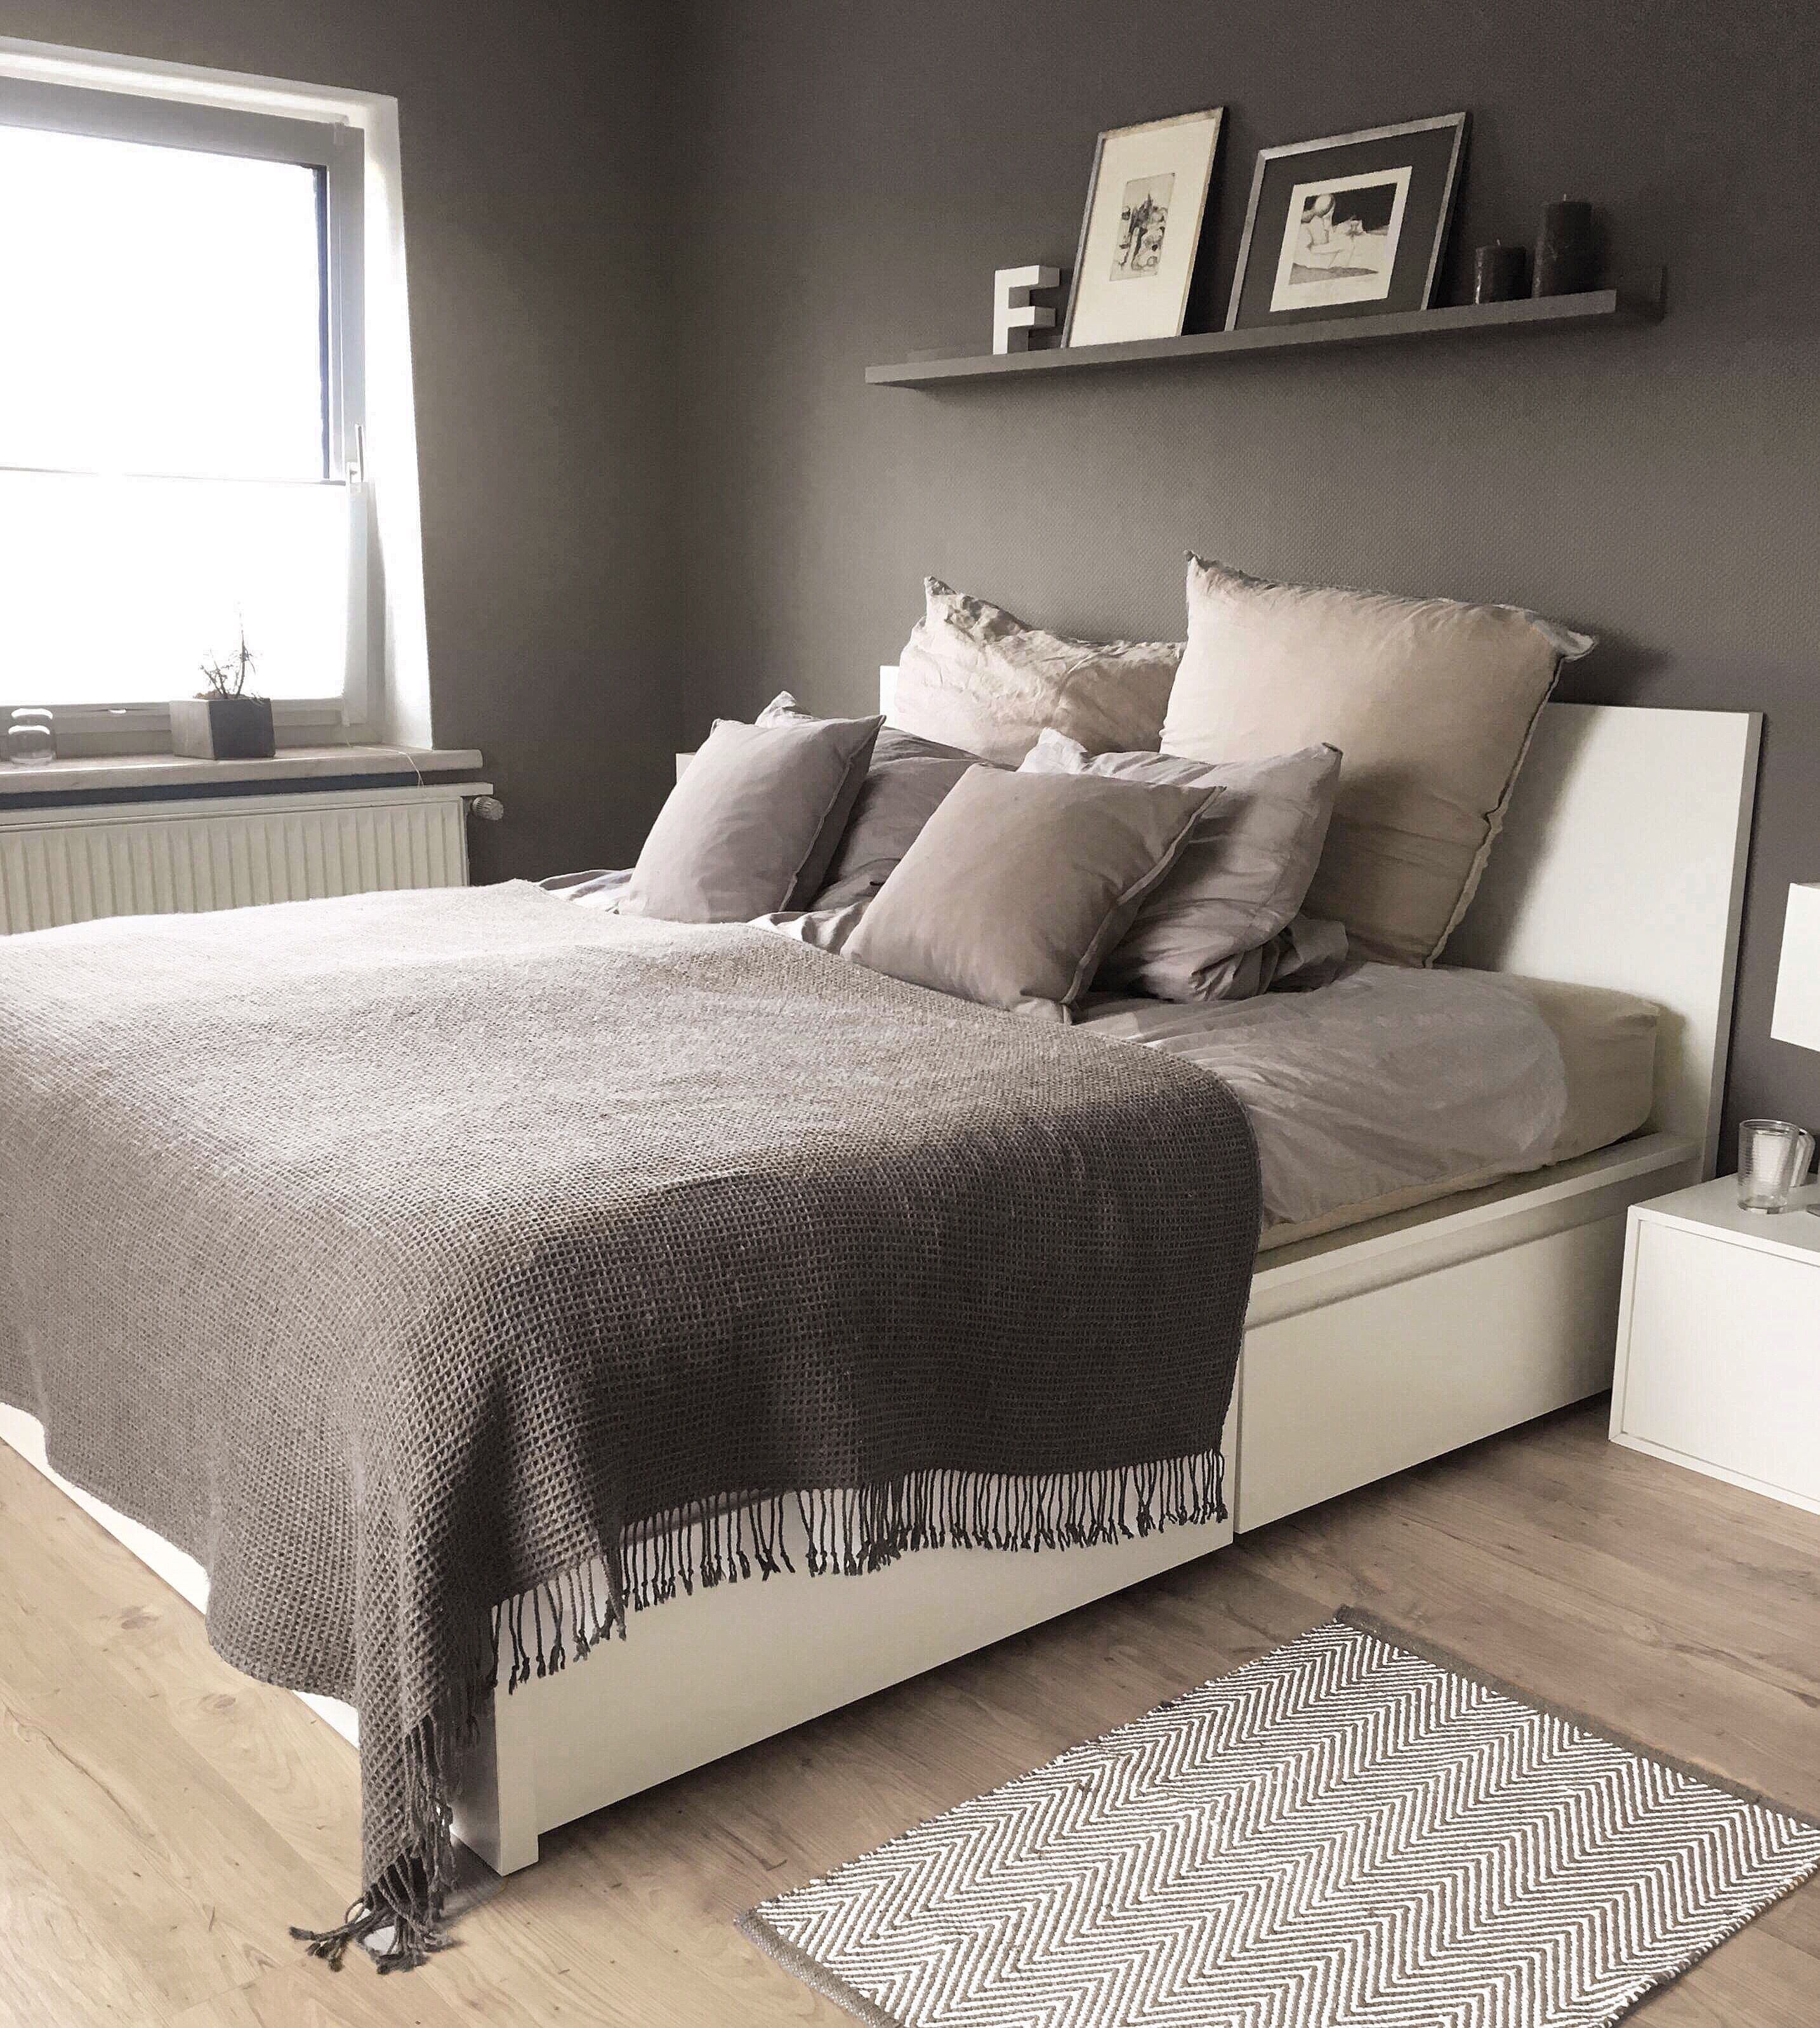 Malm Bett Grey Wall Cozy Bedroom Graues Schlafzimmer